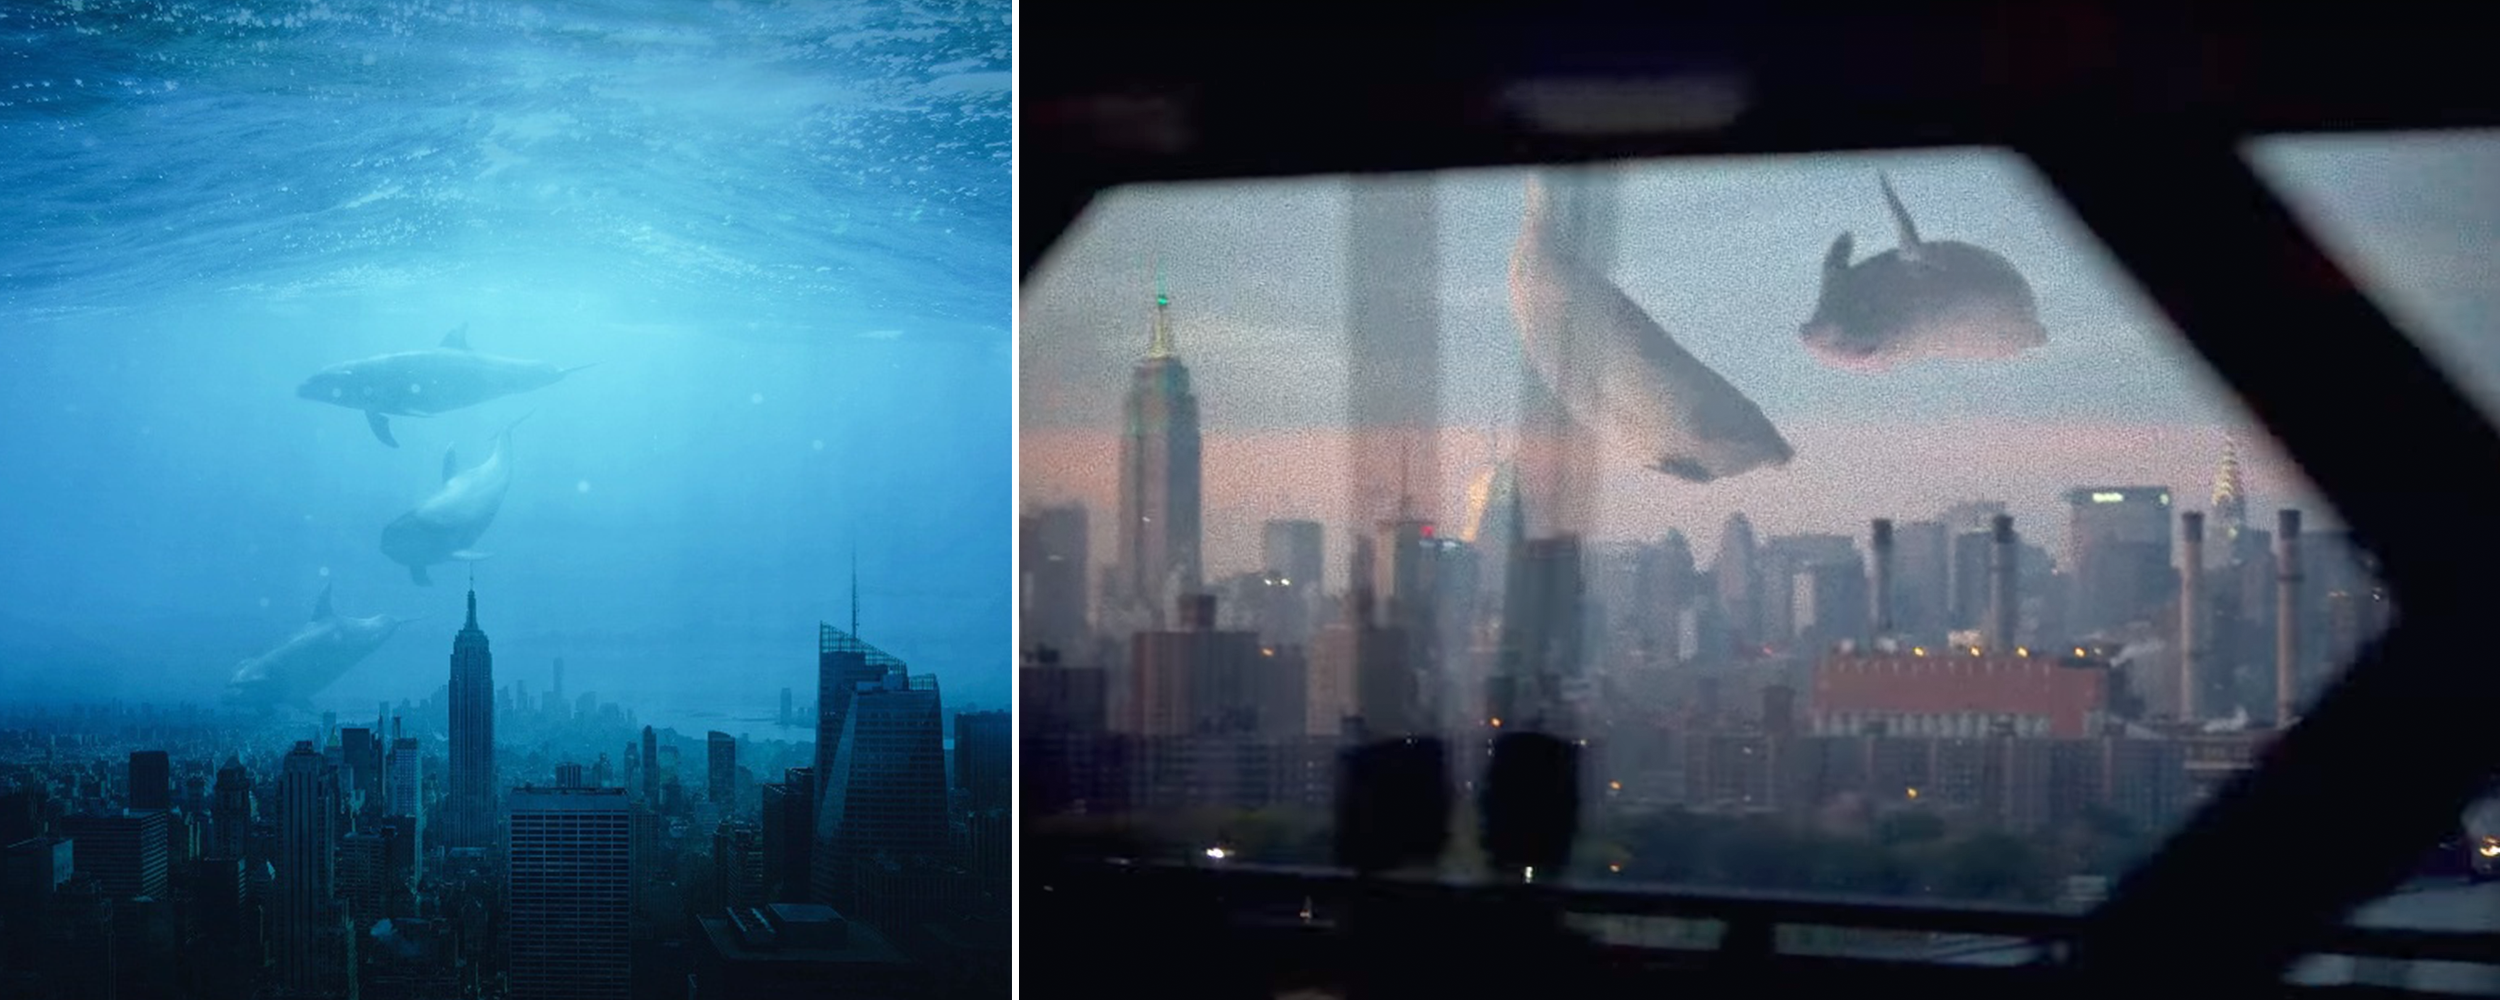 Left by @smwallday on PicsArt; Right from Coldplay's Up & Up music video